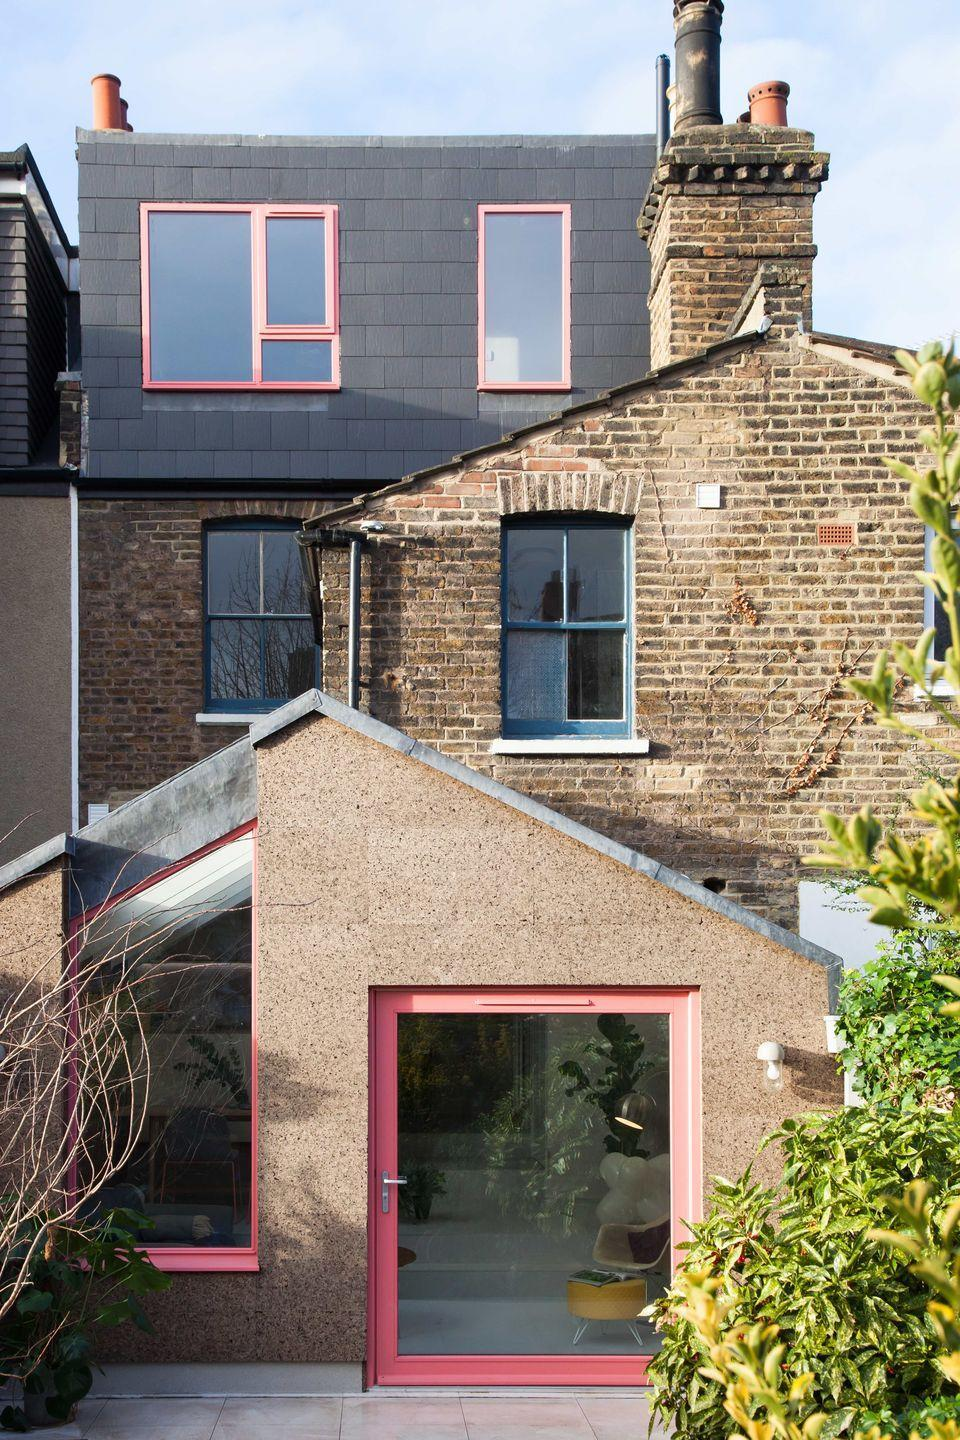 """<p>Nimi Attanayake and Tim O'Callaghan founded their practice with the aim of creating structures that everyone can enjoy. Combining bright colours and honest materials, projects like Cork House (pictured) and Slot House come with bags of character.</p><p><strong>They say </strong>'We bring a sense of playfulness and adventure to everything we do – to the buildings we create but also to how we inspire clients and communities, and how we collaborate with consultants and makers.' <a href=""""http://nimtim.co.uk/"""" rel=""""nofollow noopener"""" target=""""_blank"""" data-ylk=""""slk:nimtim.co.uk"""" class=""""link rapid-noclick-resp"""">nimtim.co.uk</a></p>"""